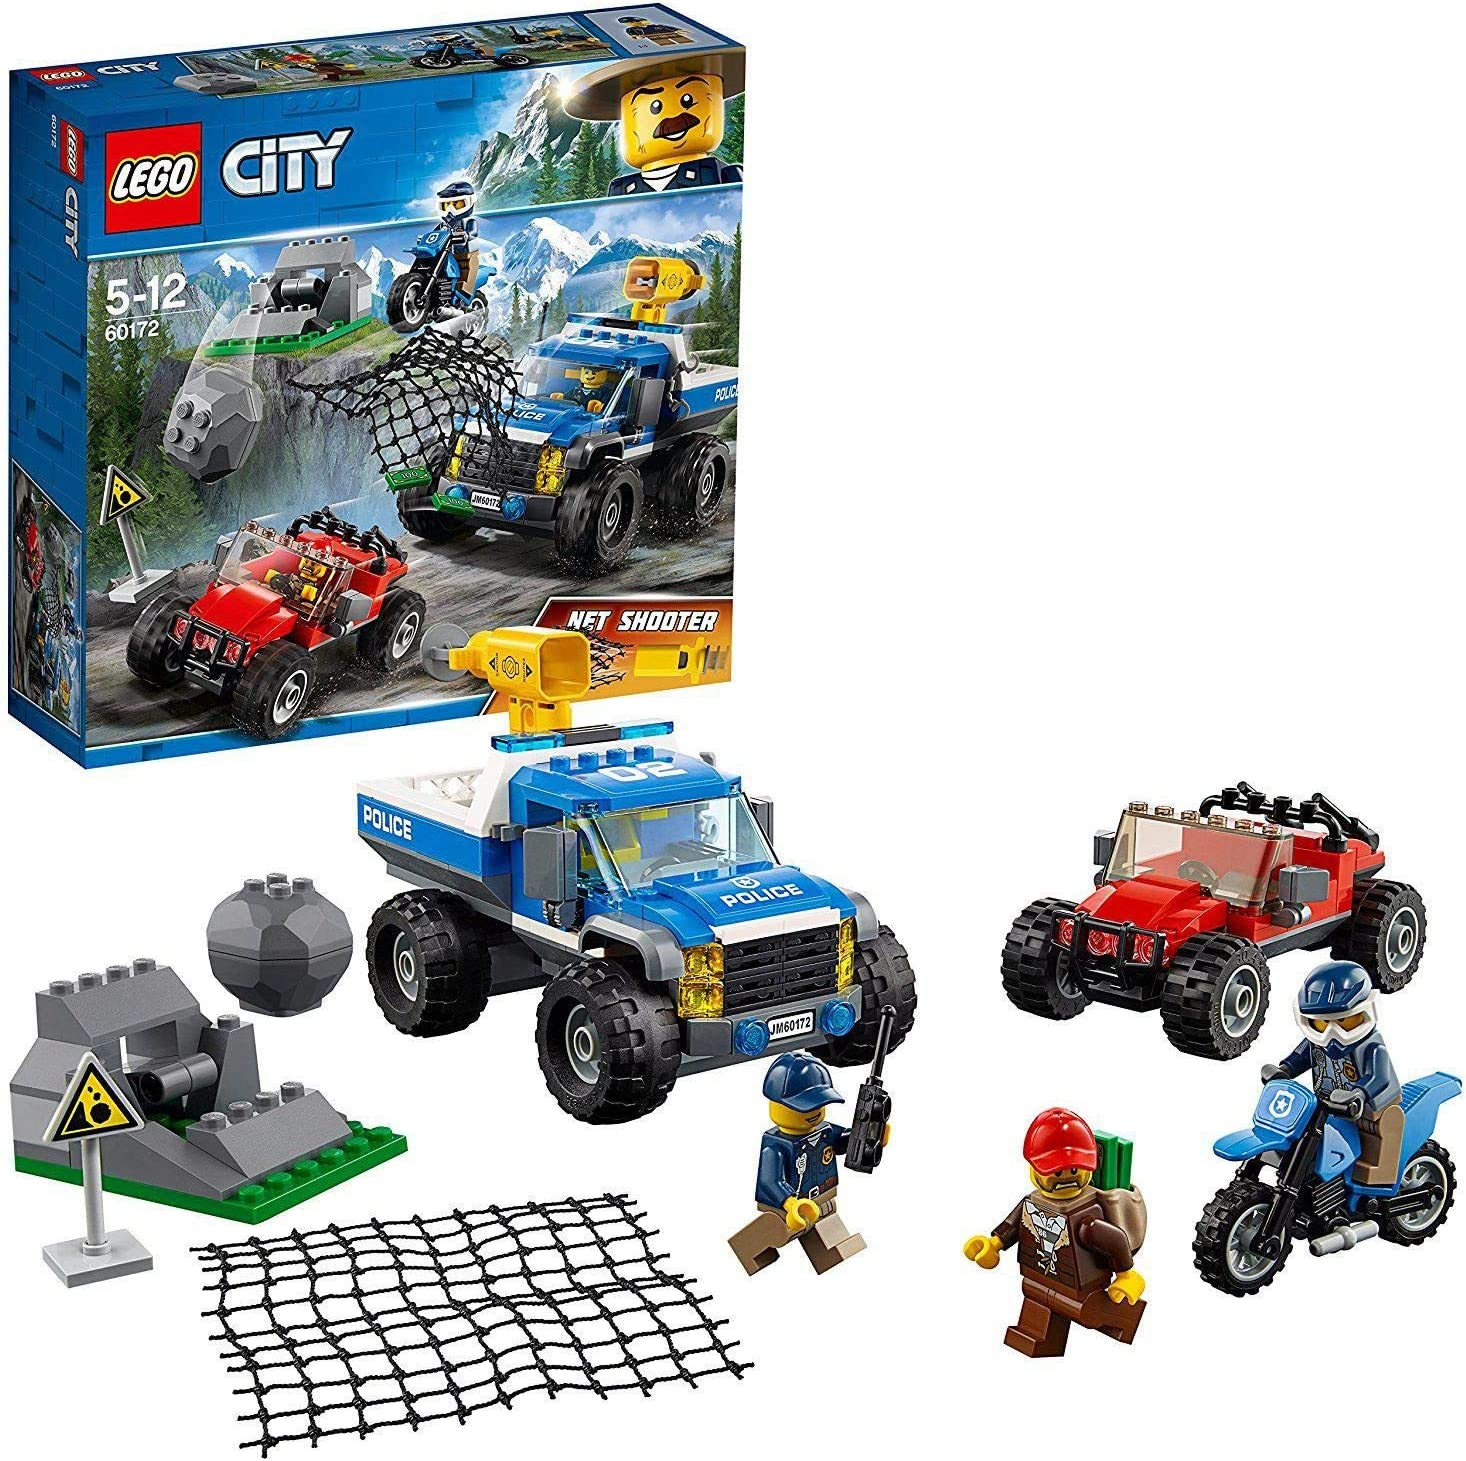 LEGO City Mountain Dirt Road Pursuit Police Building Set, Police 4x4 Toy Car & Buggy, Police Toys for Kids